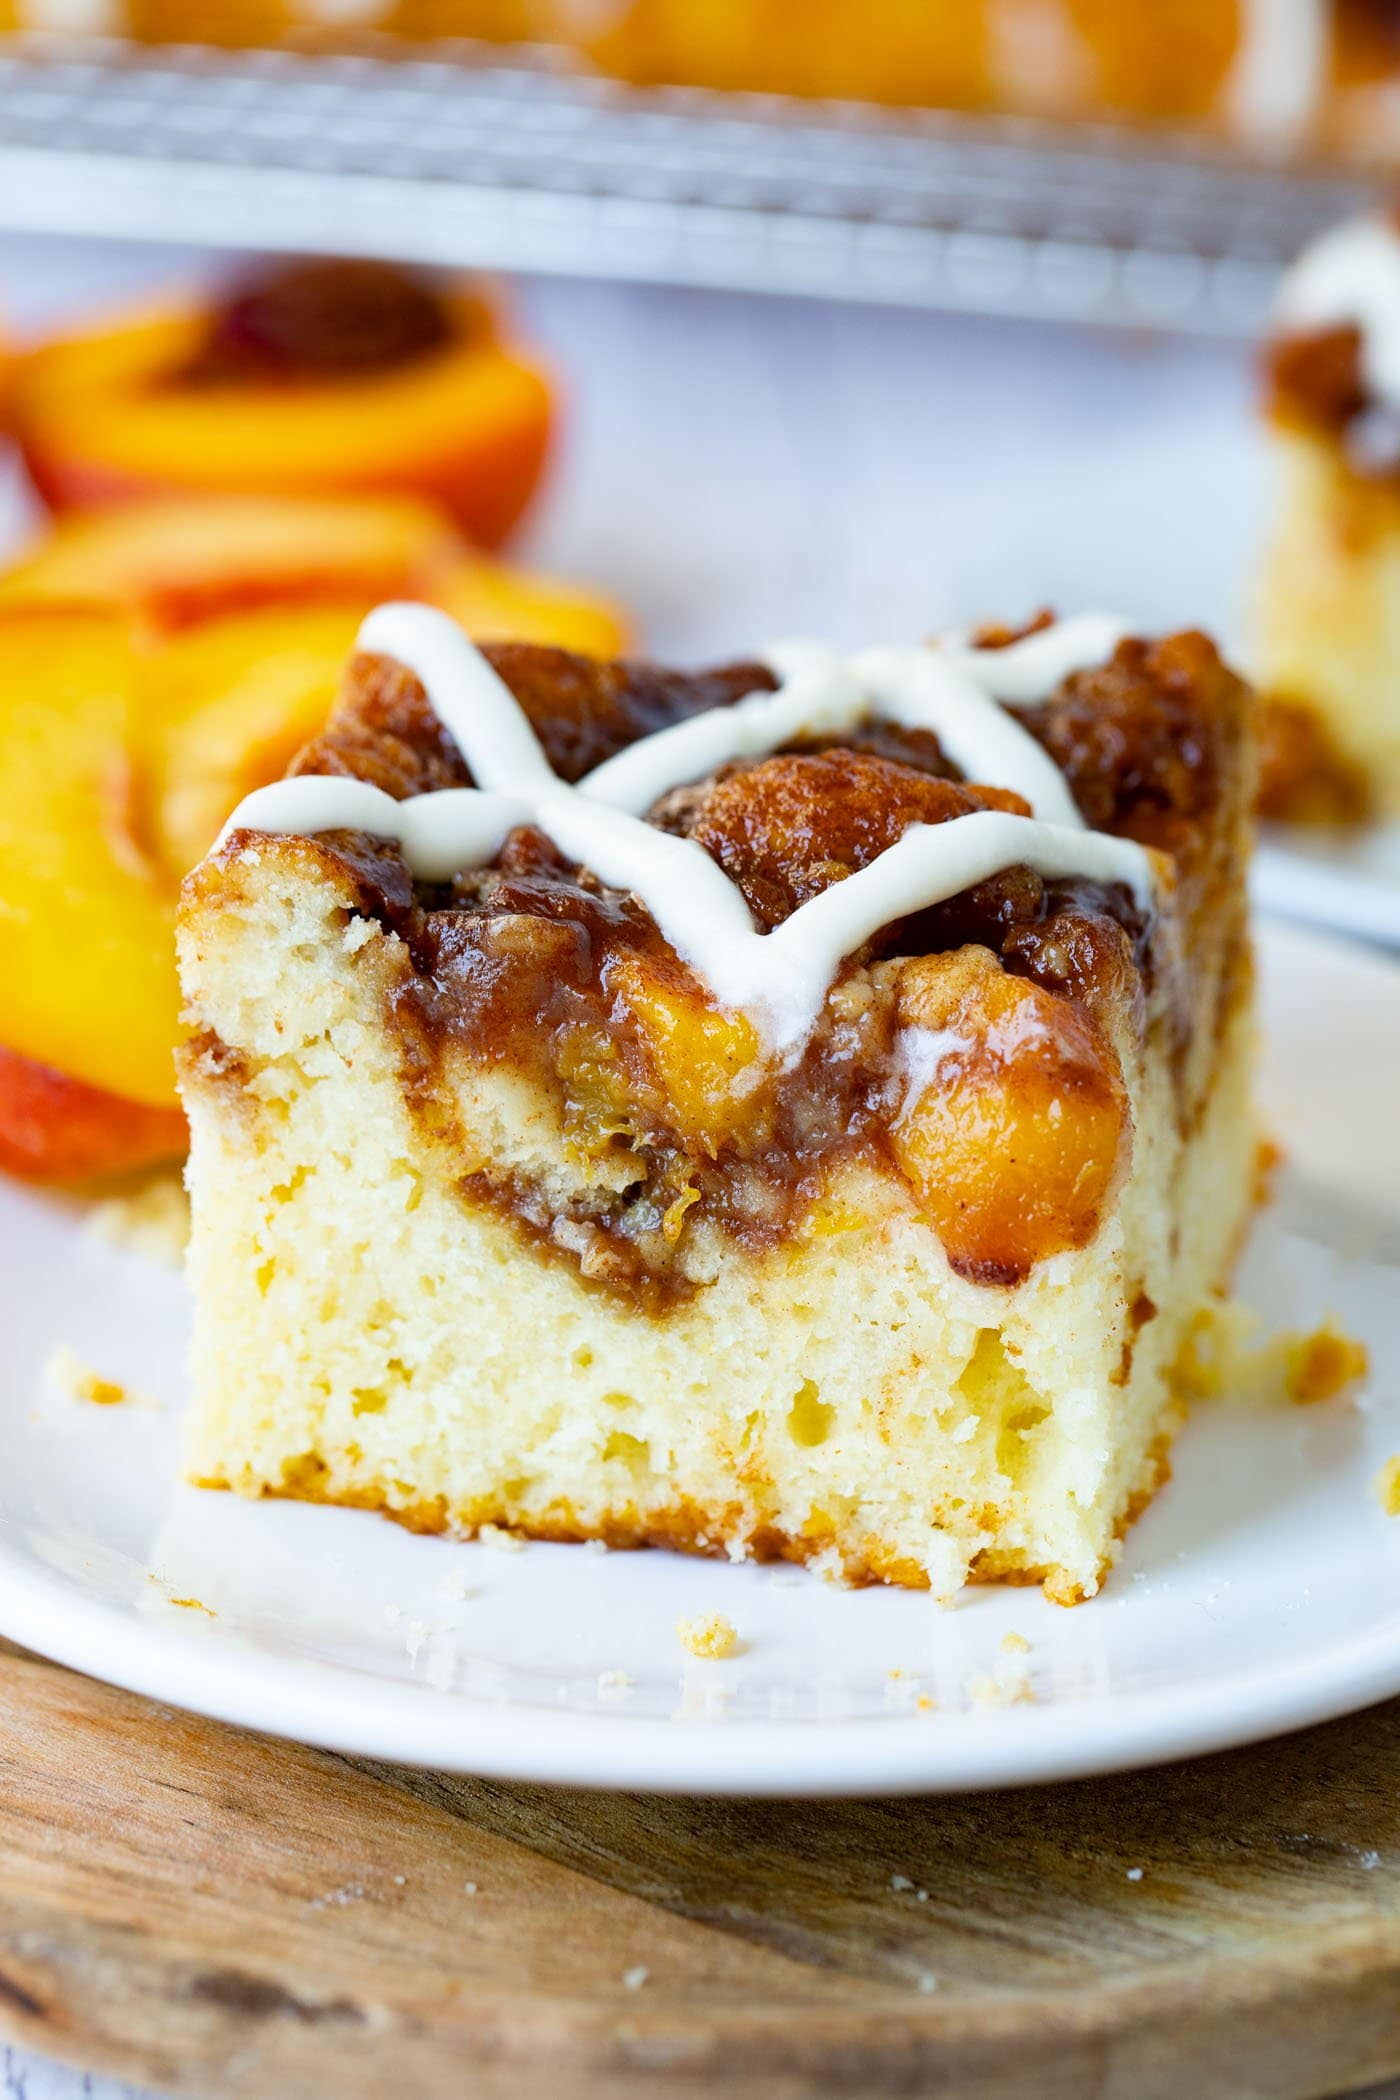 Picture of a single piece of peach coffee cake on a white plate with a sweet glaze on top of the cake